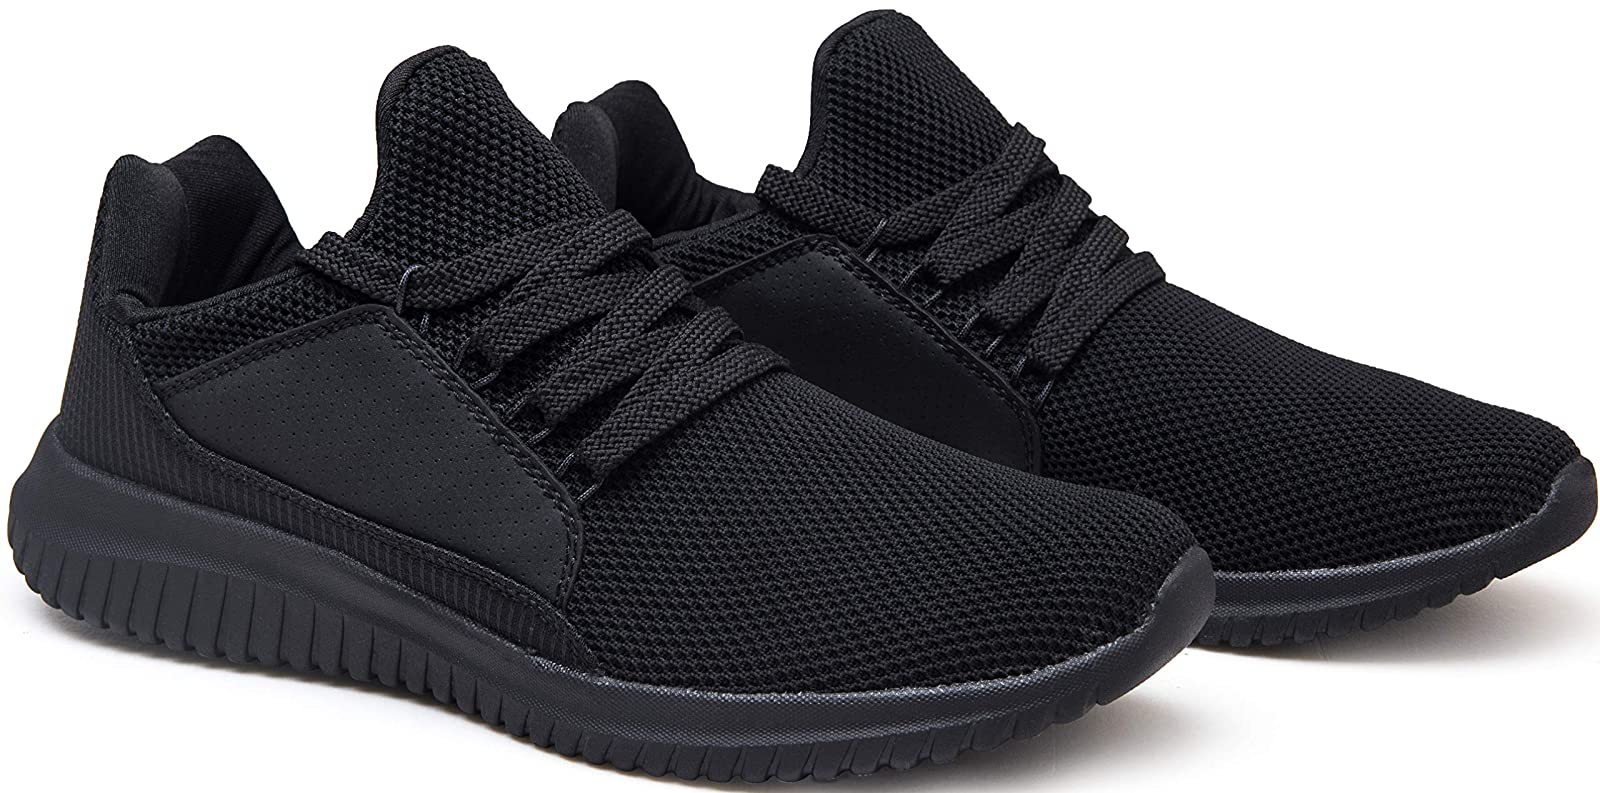 Krystory Casual Running SneakersMen and Women Breathable - 2